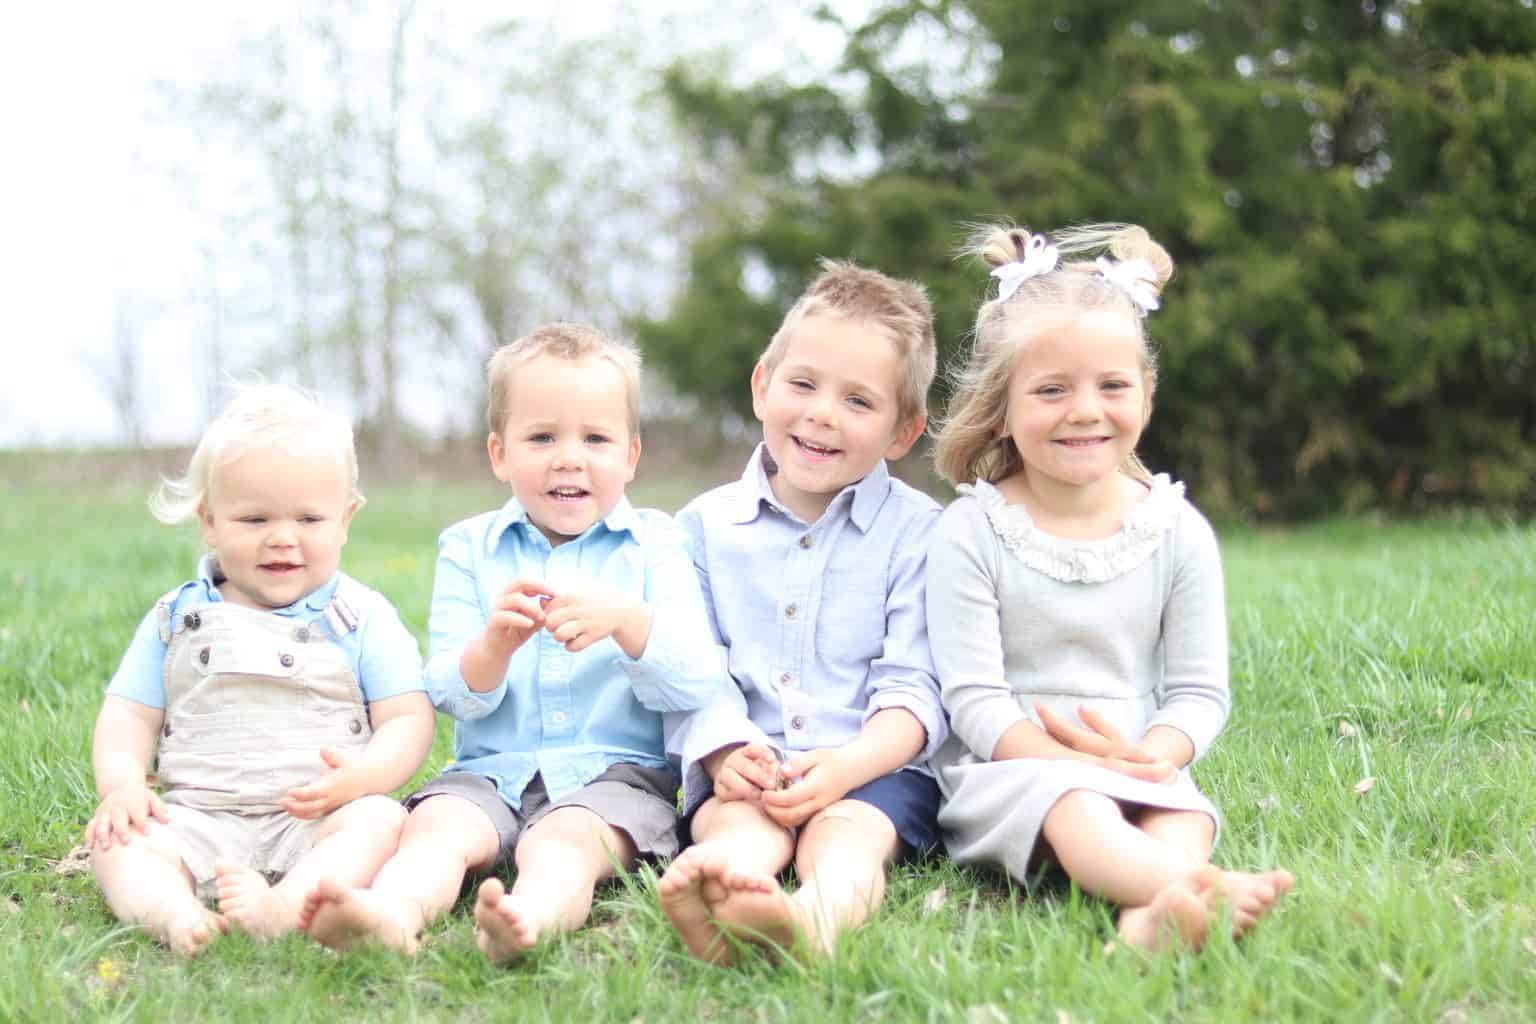 Come along for a typical day in the life of a stay at home mom of 4 young children.